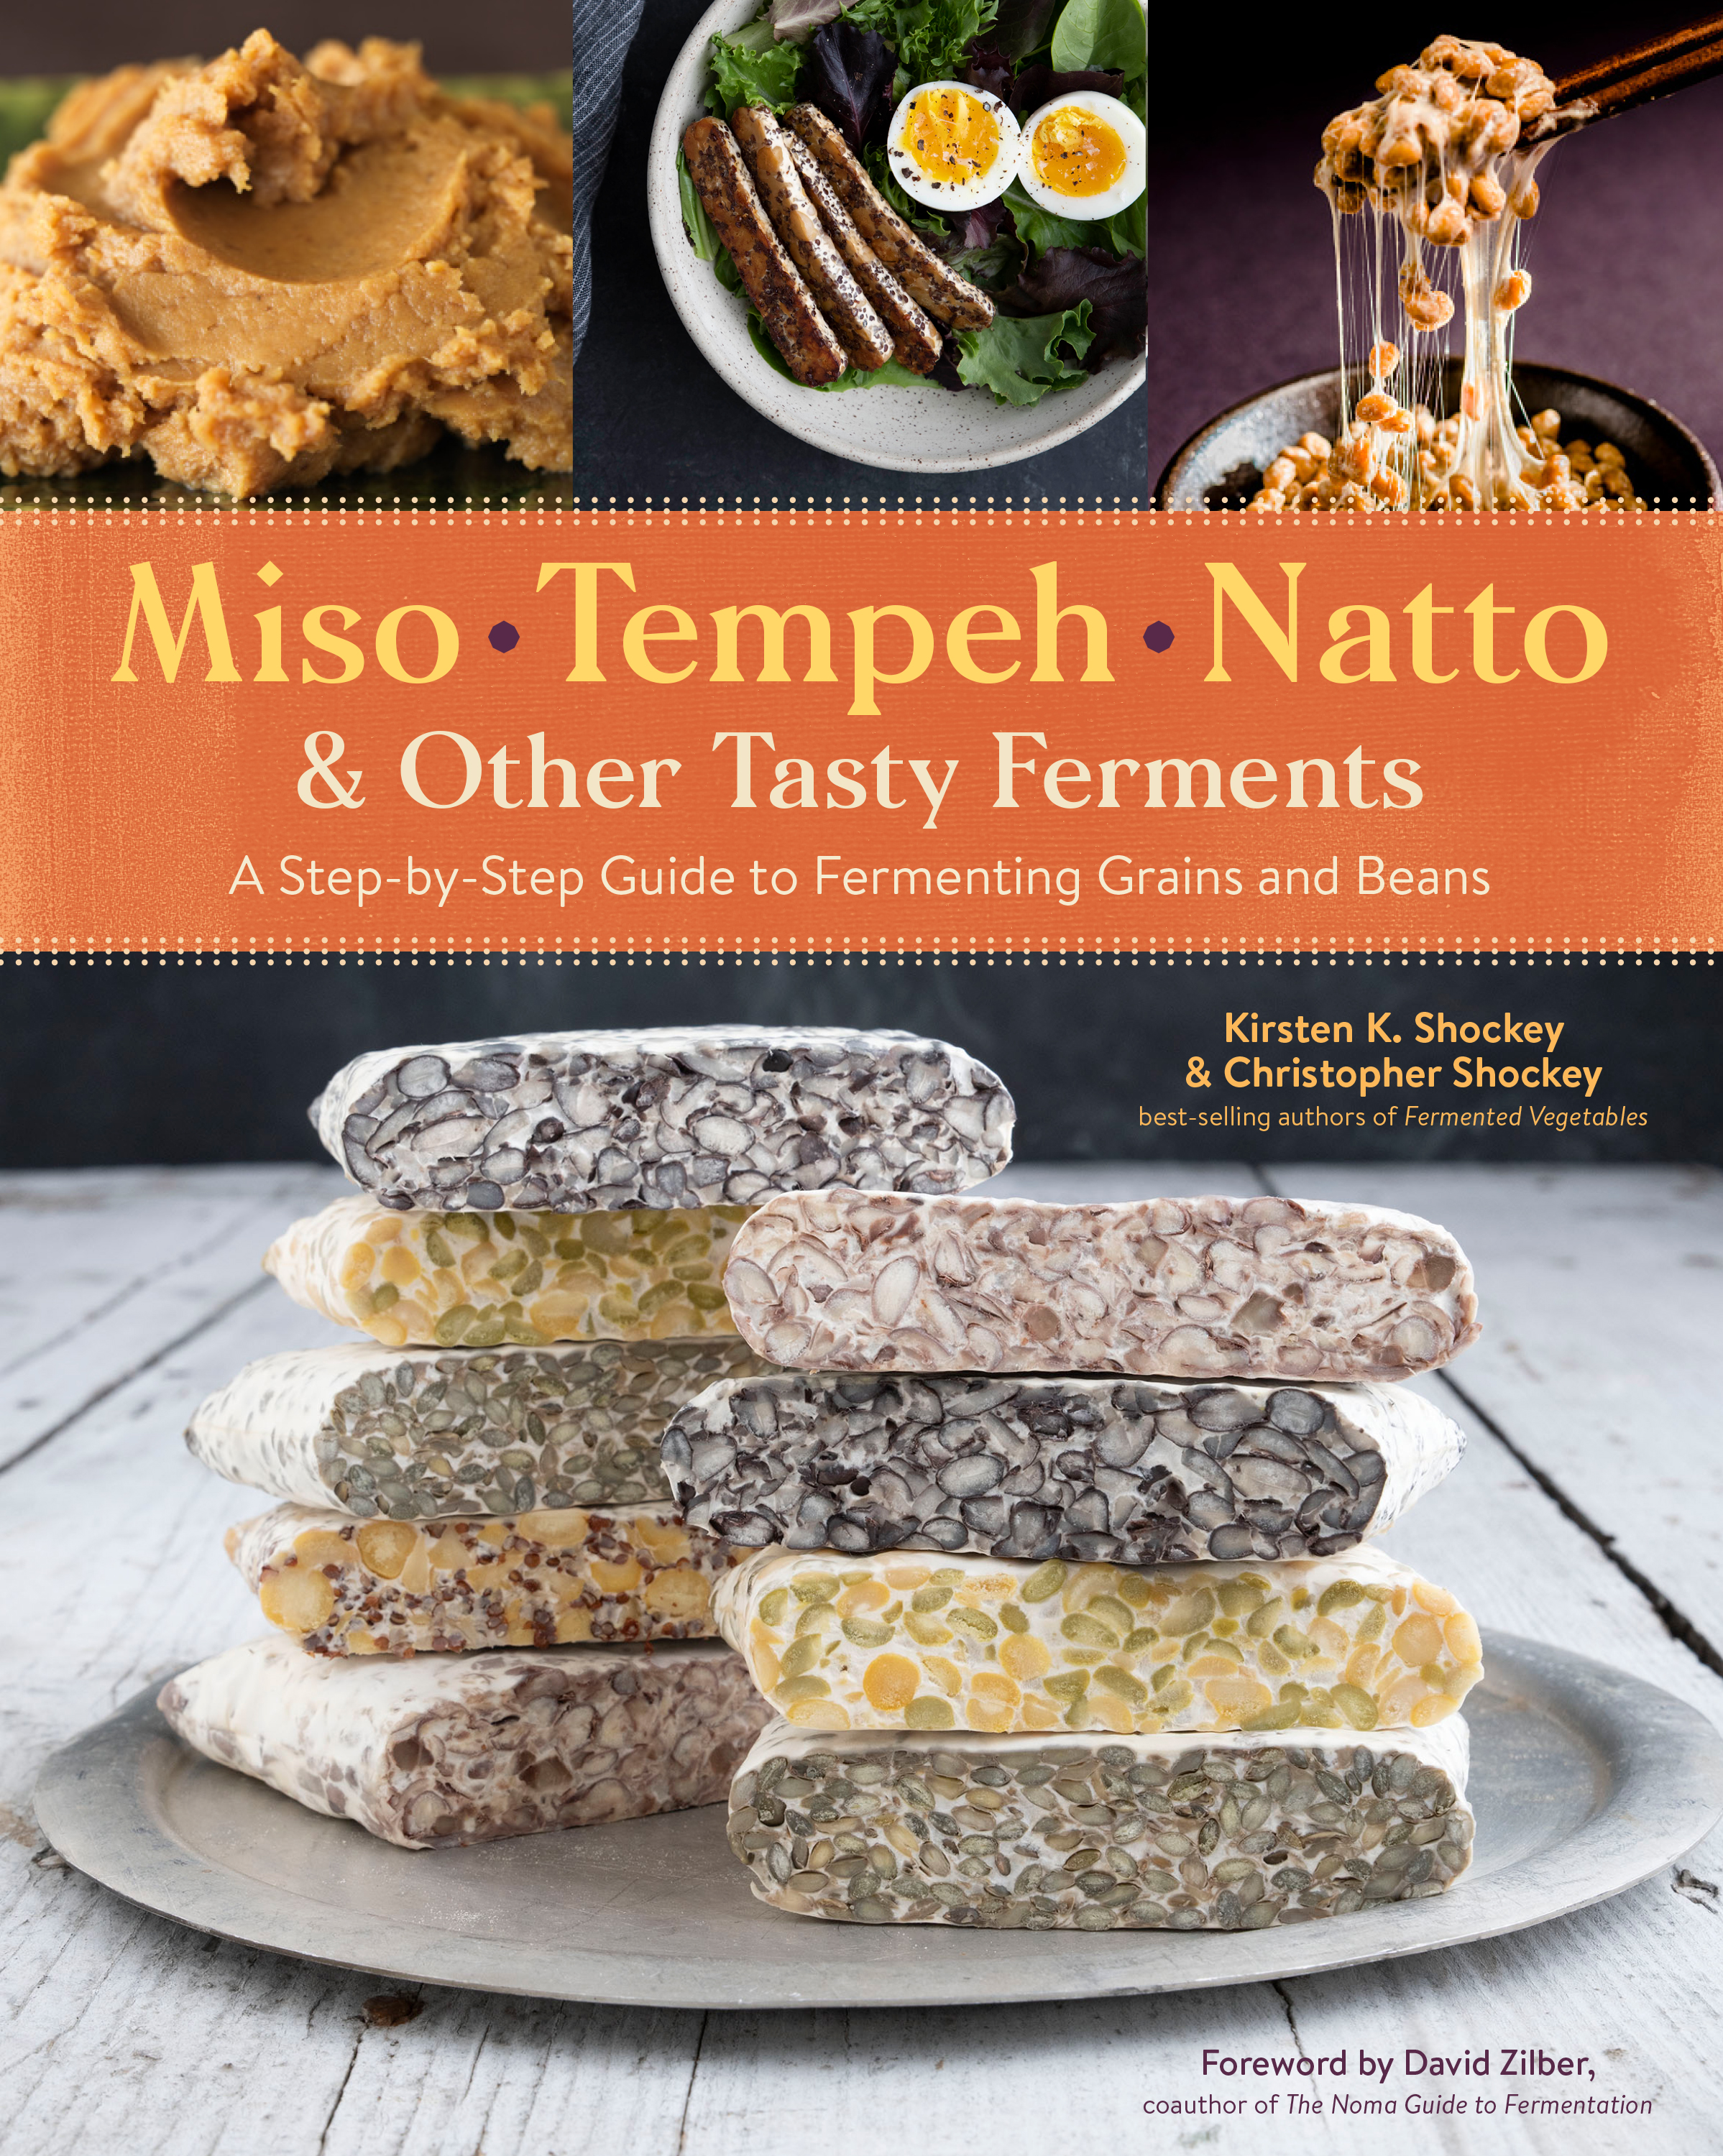 622988.MisoTempeh.Cover.jpg